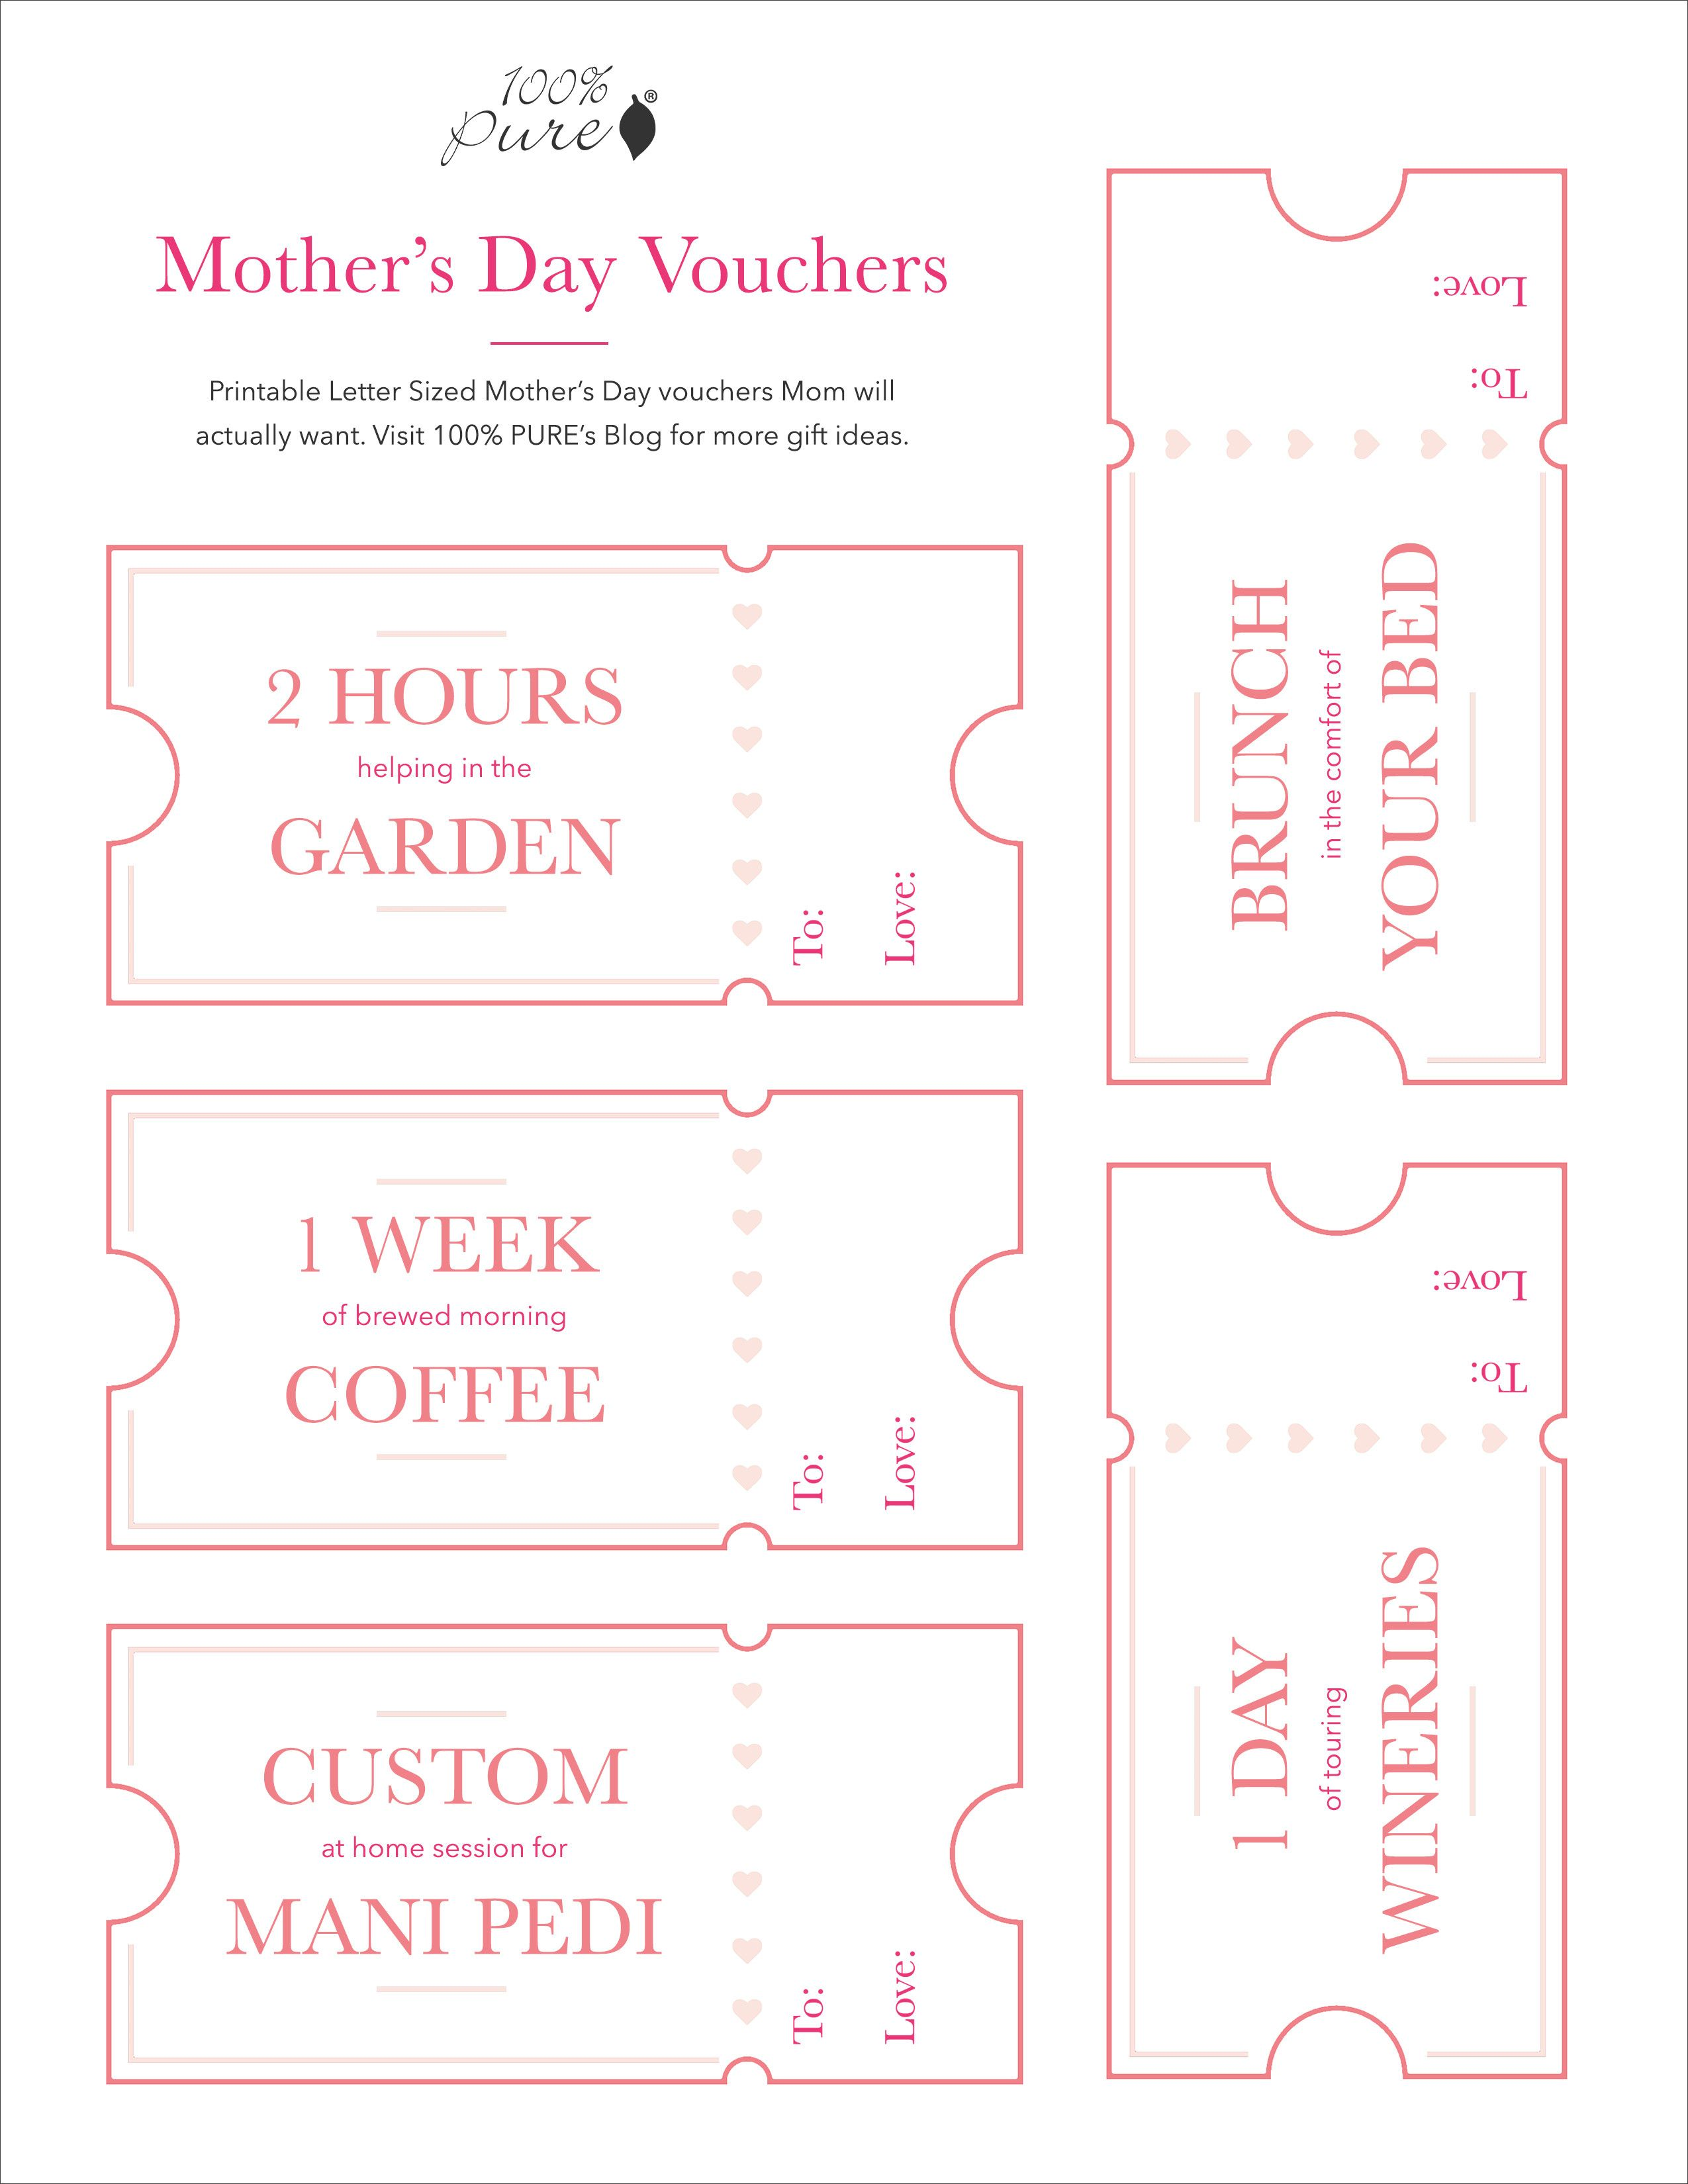 5 ways to pamper mom this mothers day mothers day